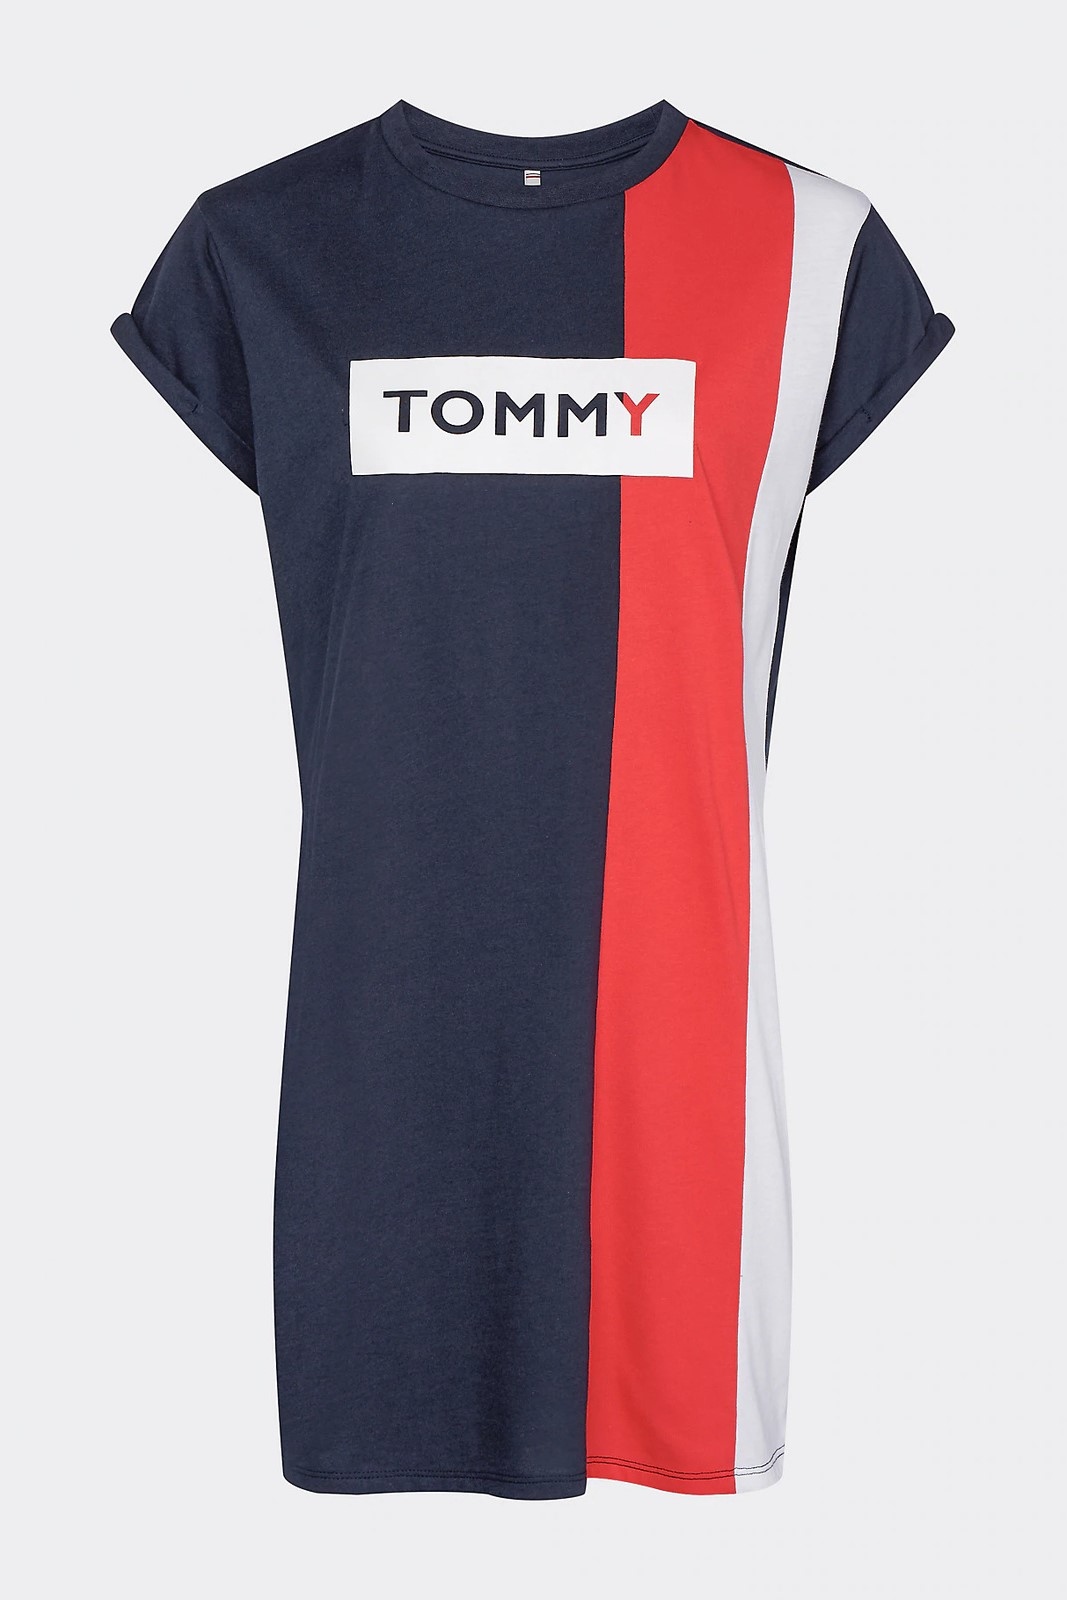 Tommy Hilfiger multicolore abito T-shirt Dress